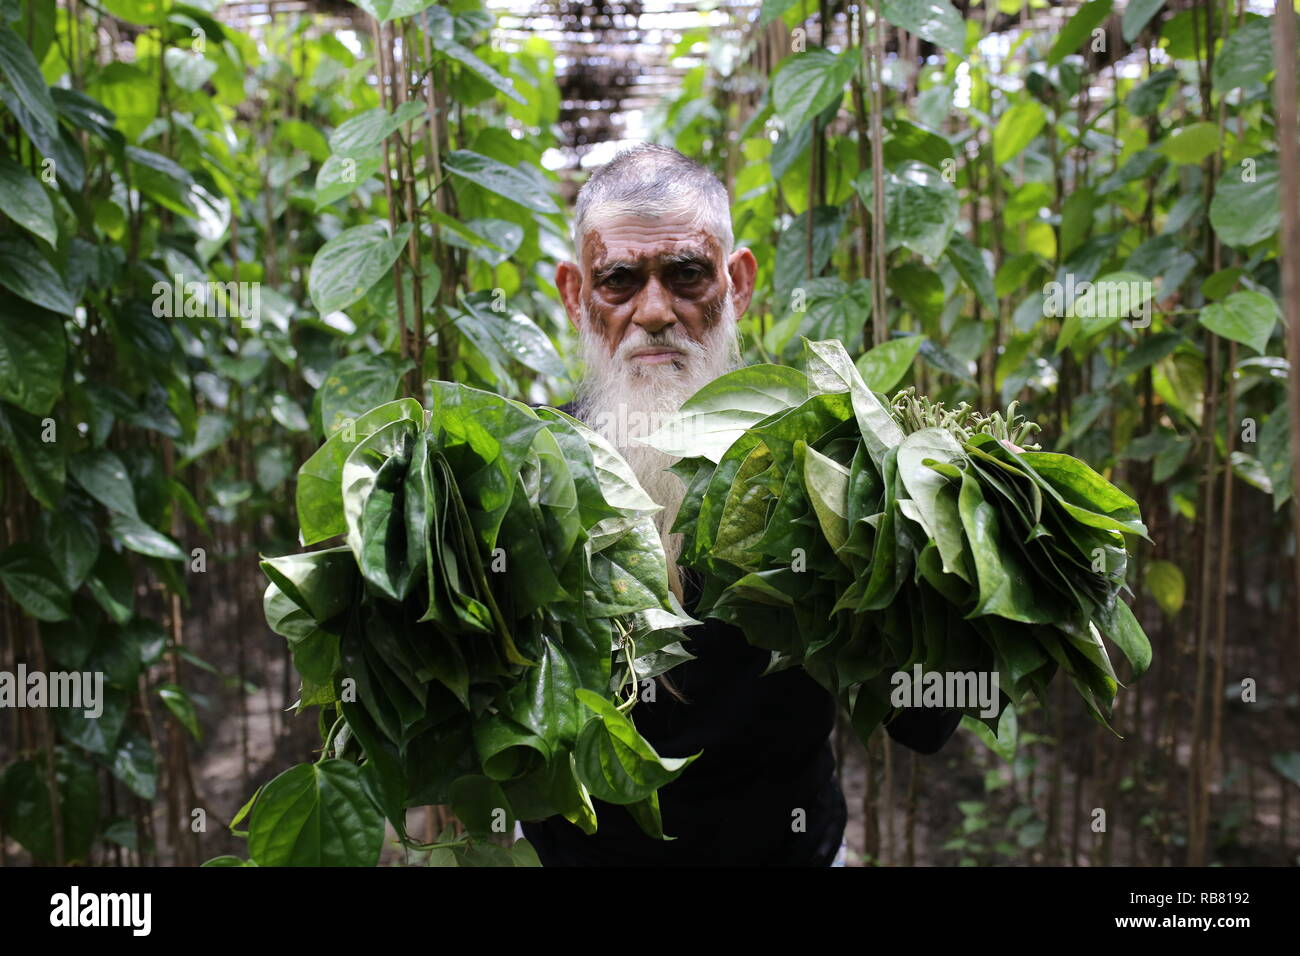 A man working in a betel leaf field in Shariatpur, Bangladesh on August 30, 2018. About 60-70% people depend on agriculture as the 166 million people live in this country and about 22 million people are still living below the poverty line. © Rehman Asad / Alamy Stock Photo - Stock Image